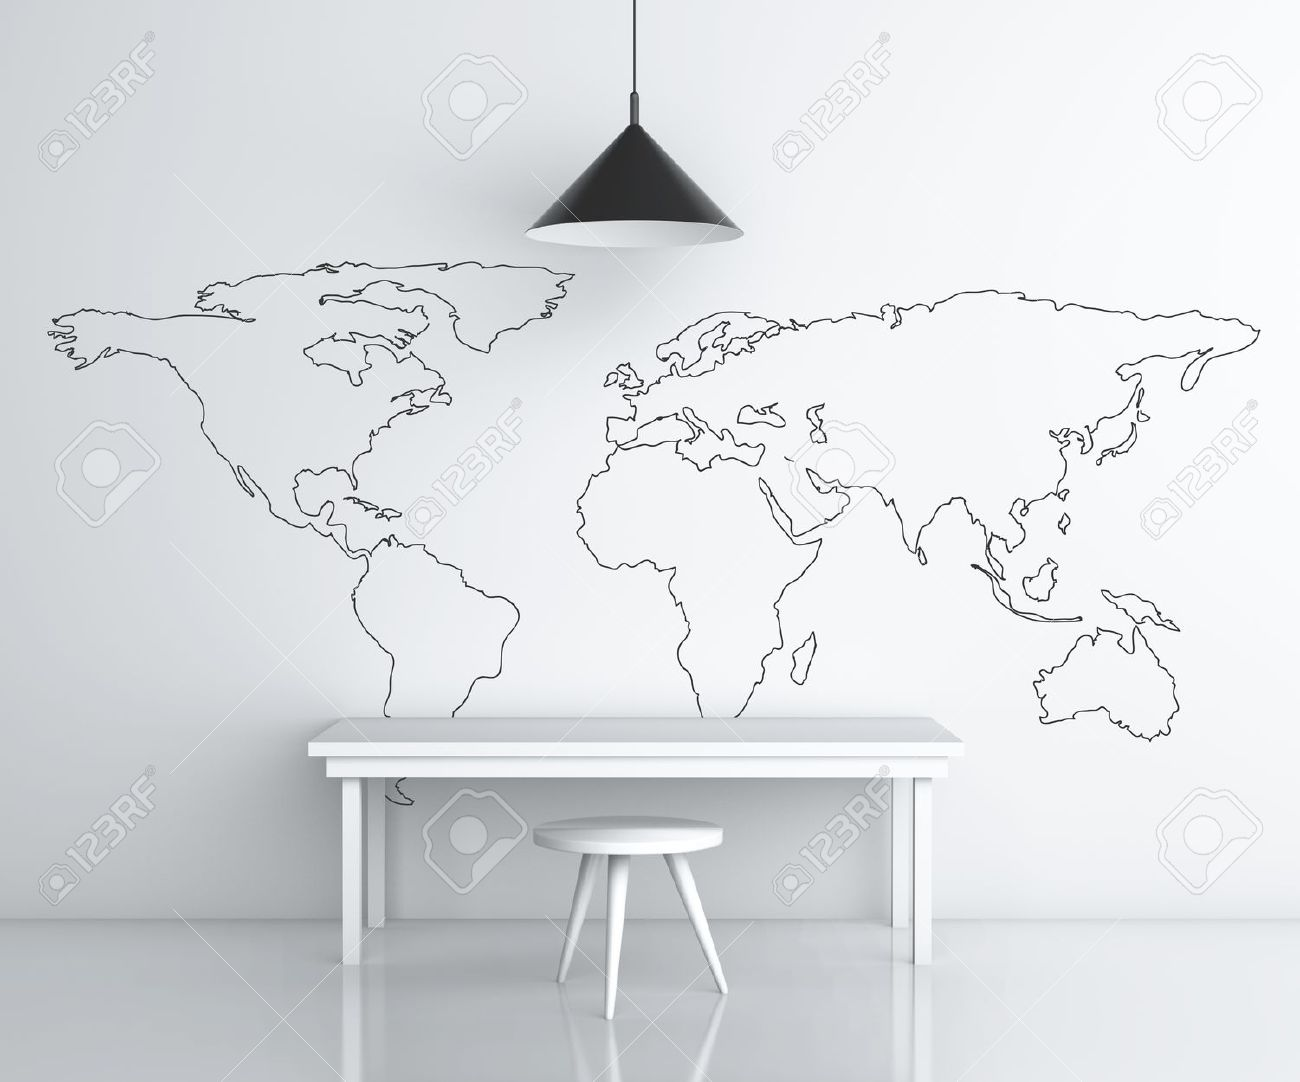 Room with furniture and drawing world map on wall stock photo room with furniture and drawing world map on wall stock photo 18187896 gumiabroncs Gallery